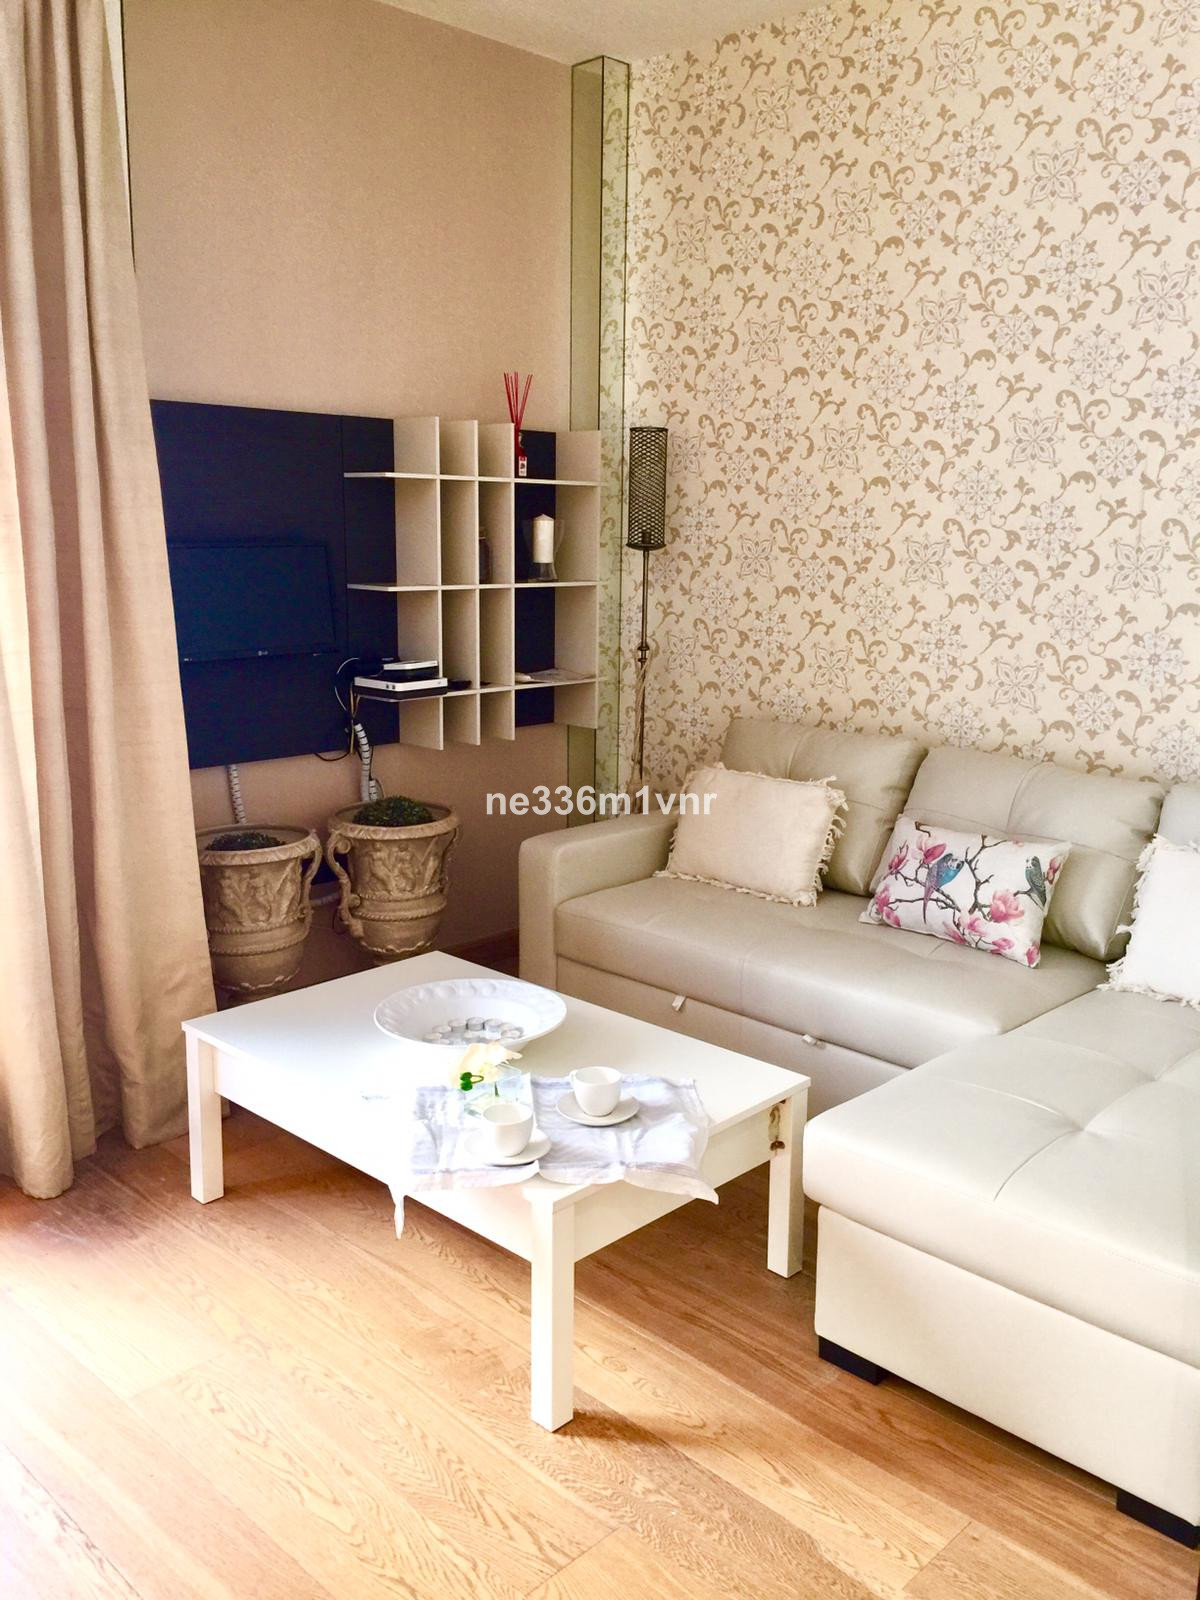 LUXURY FLAT IN THE HEART OF THE HISTORIC CENTRE!   Luminous apartment with luxury qualities, located,Spain